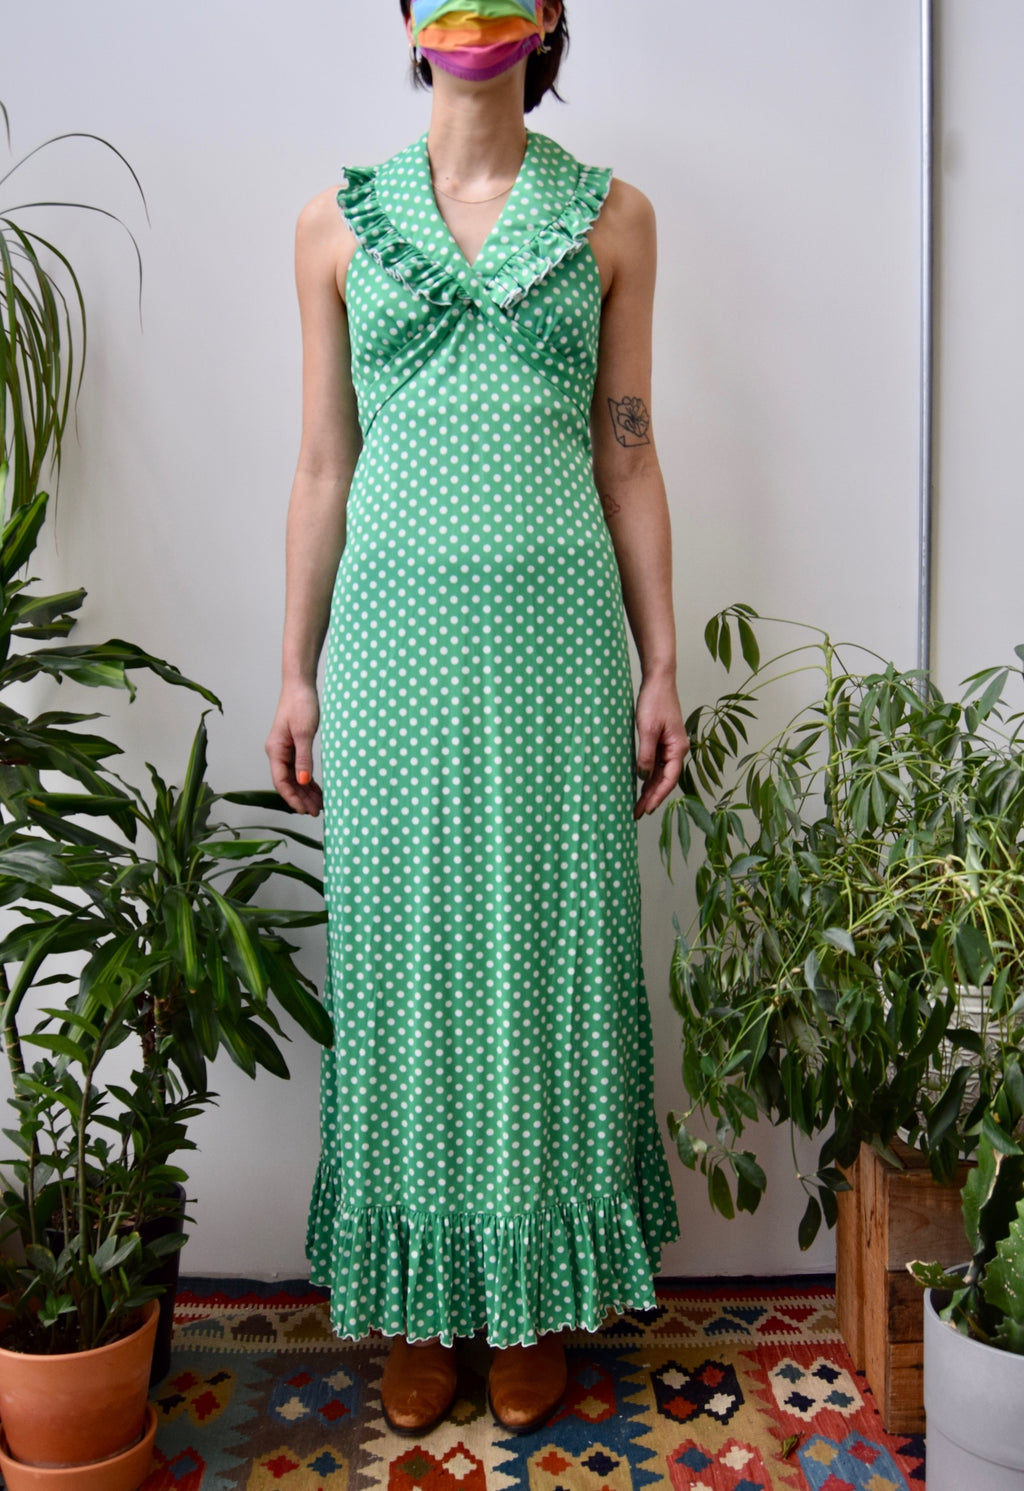 Seventies Green and White Polka Dot Dress